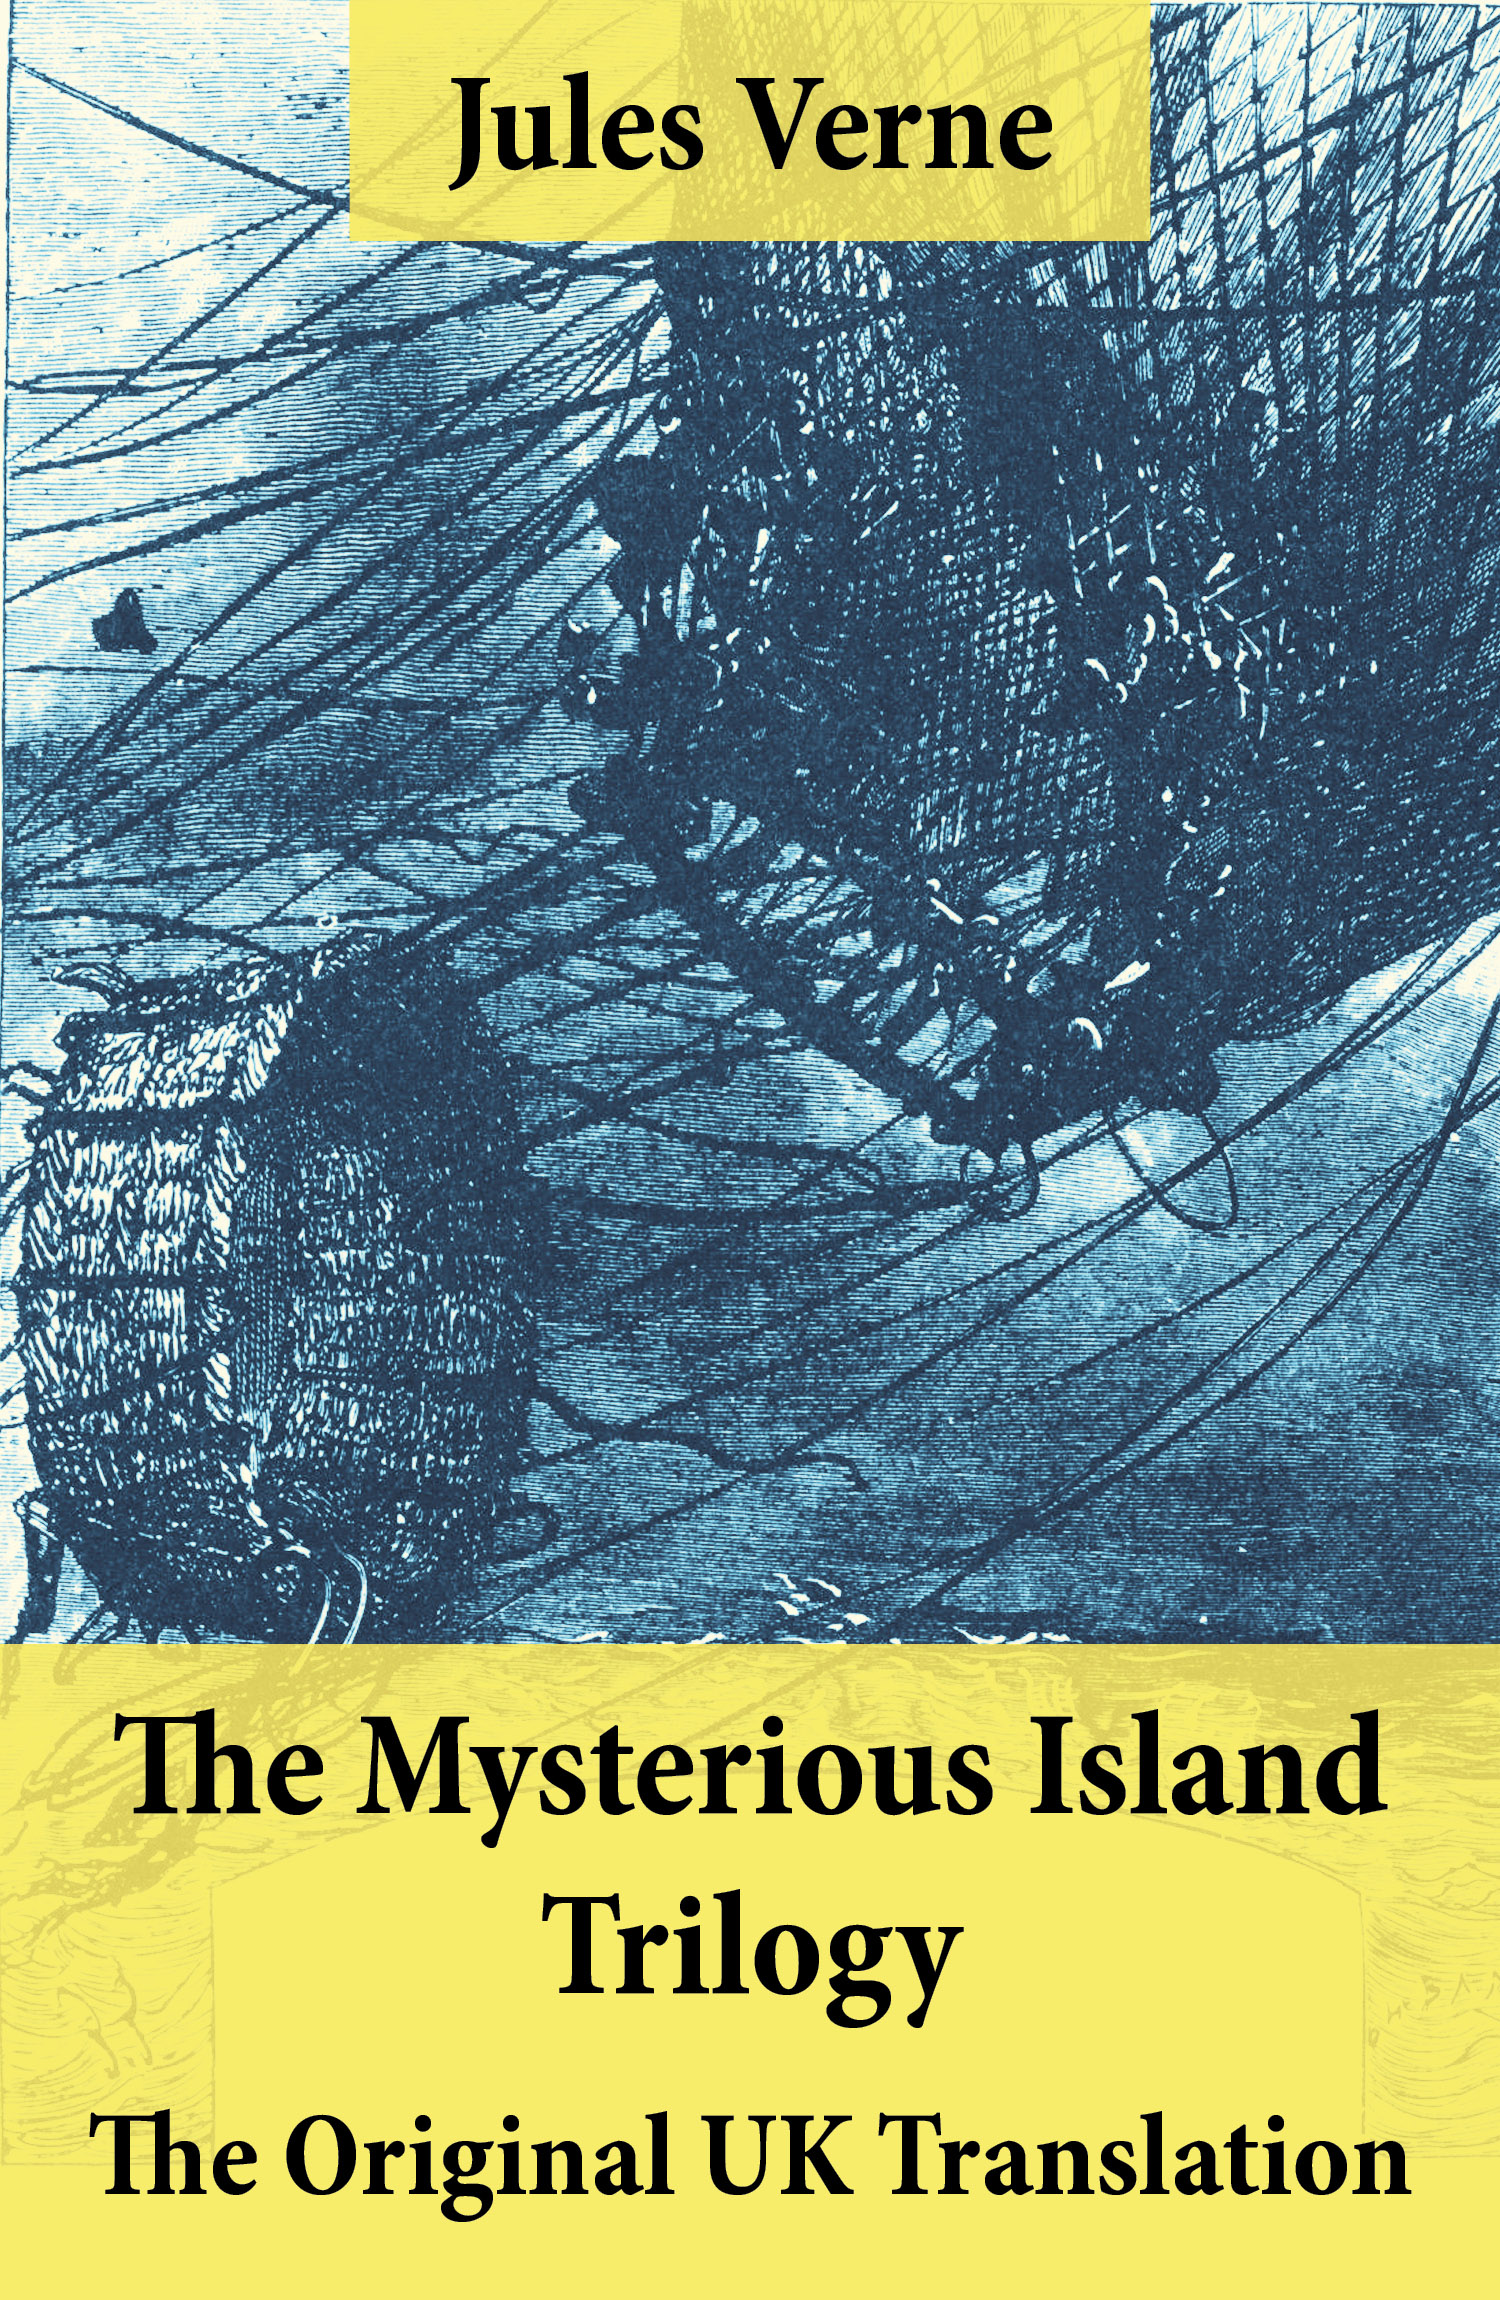 The Mysterious Island Trilogy - The Original UK Translation